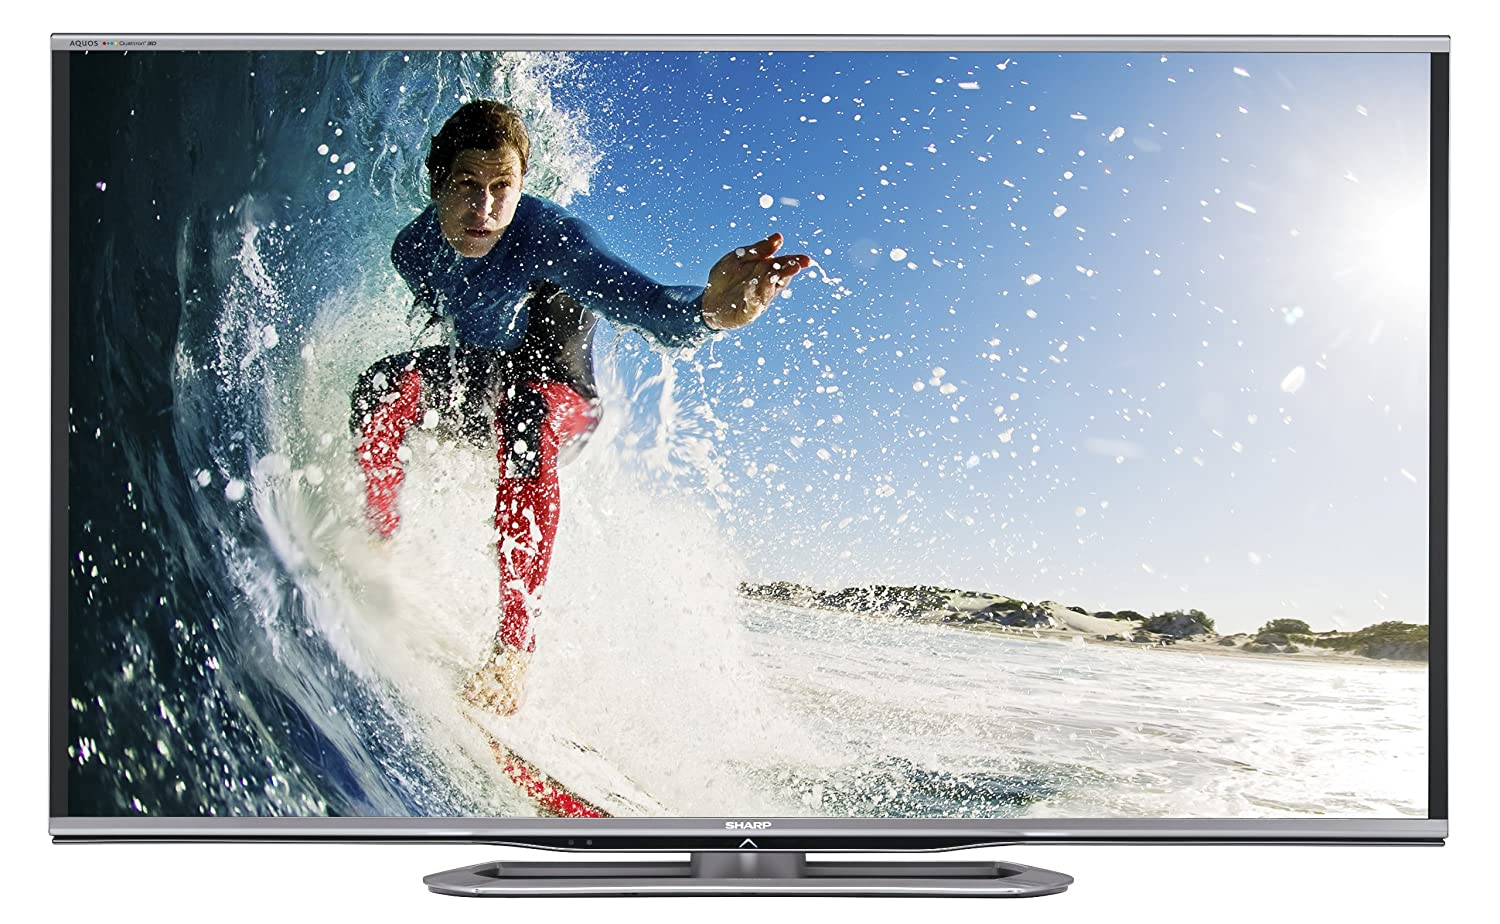 Sharp LC-70LE857 70-Inch Aquos Quattron 1080p 240Hz LED 3D TV (2013 Model)